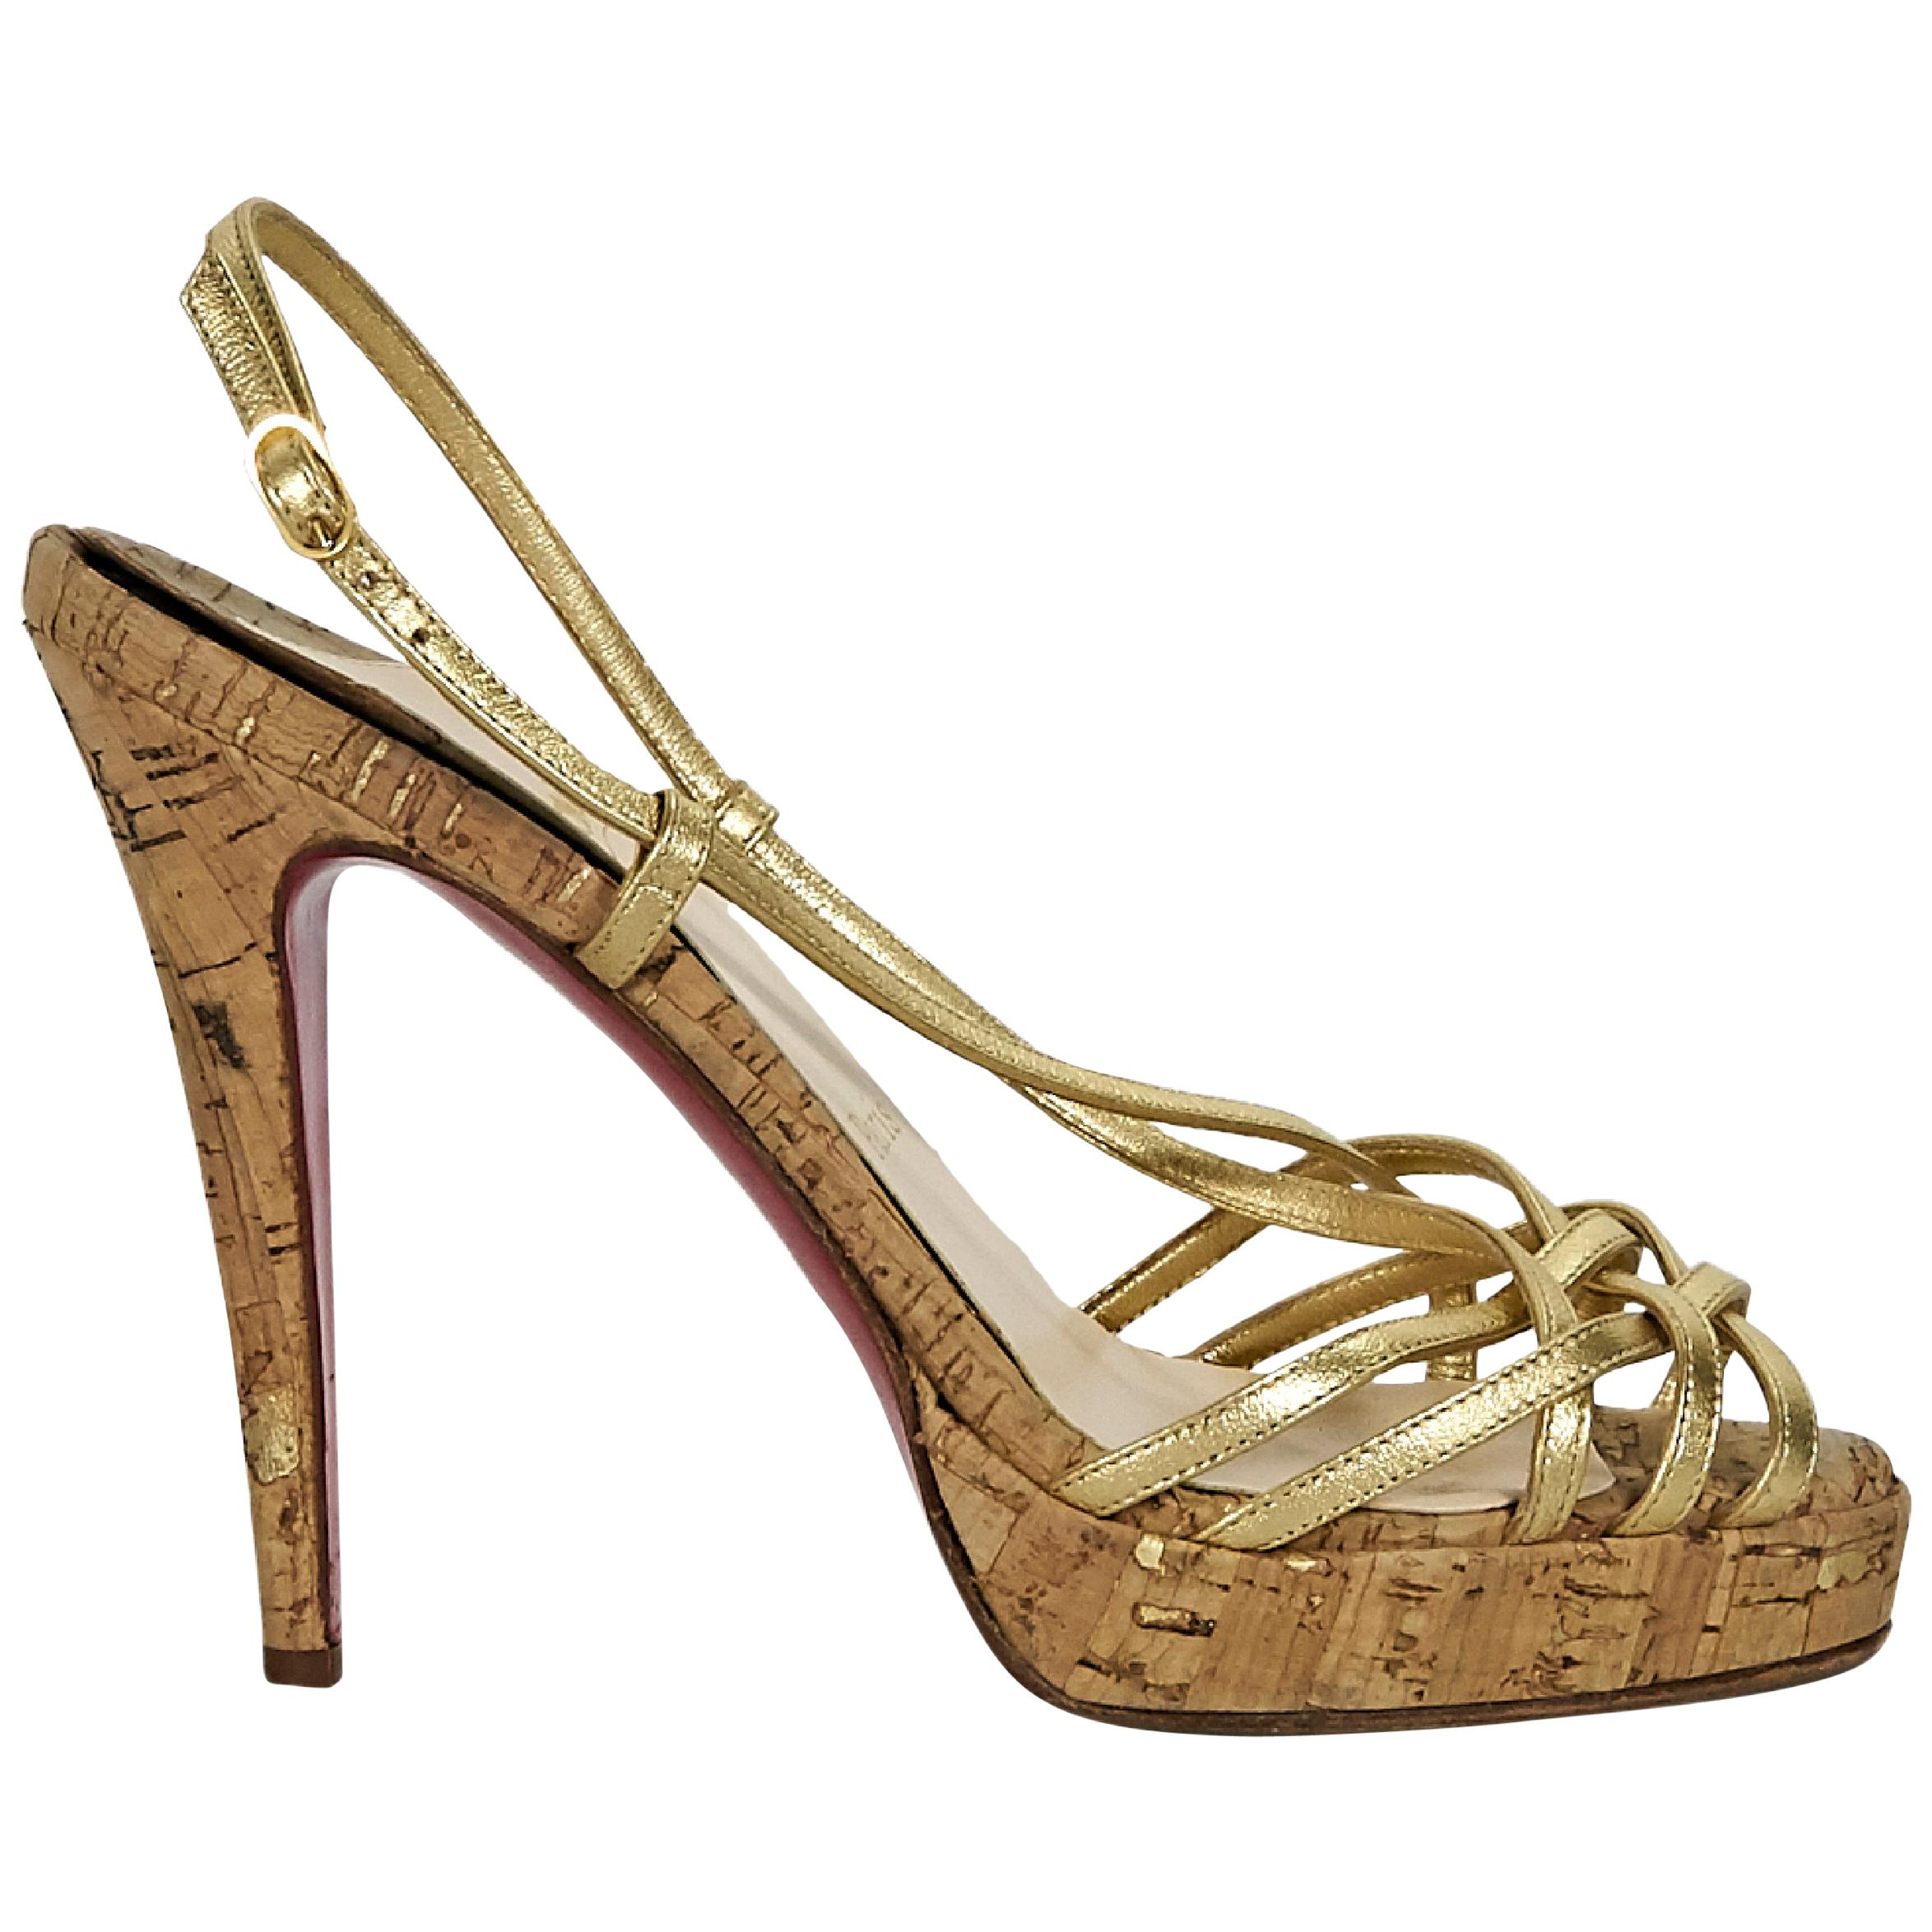 650ece846293 Metallic Gold Christian Louboutin Strappy Platform Sandals For Sale at  1stdibs